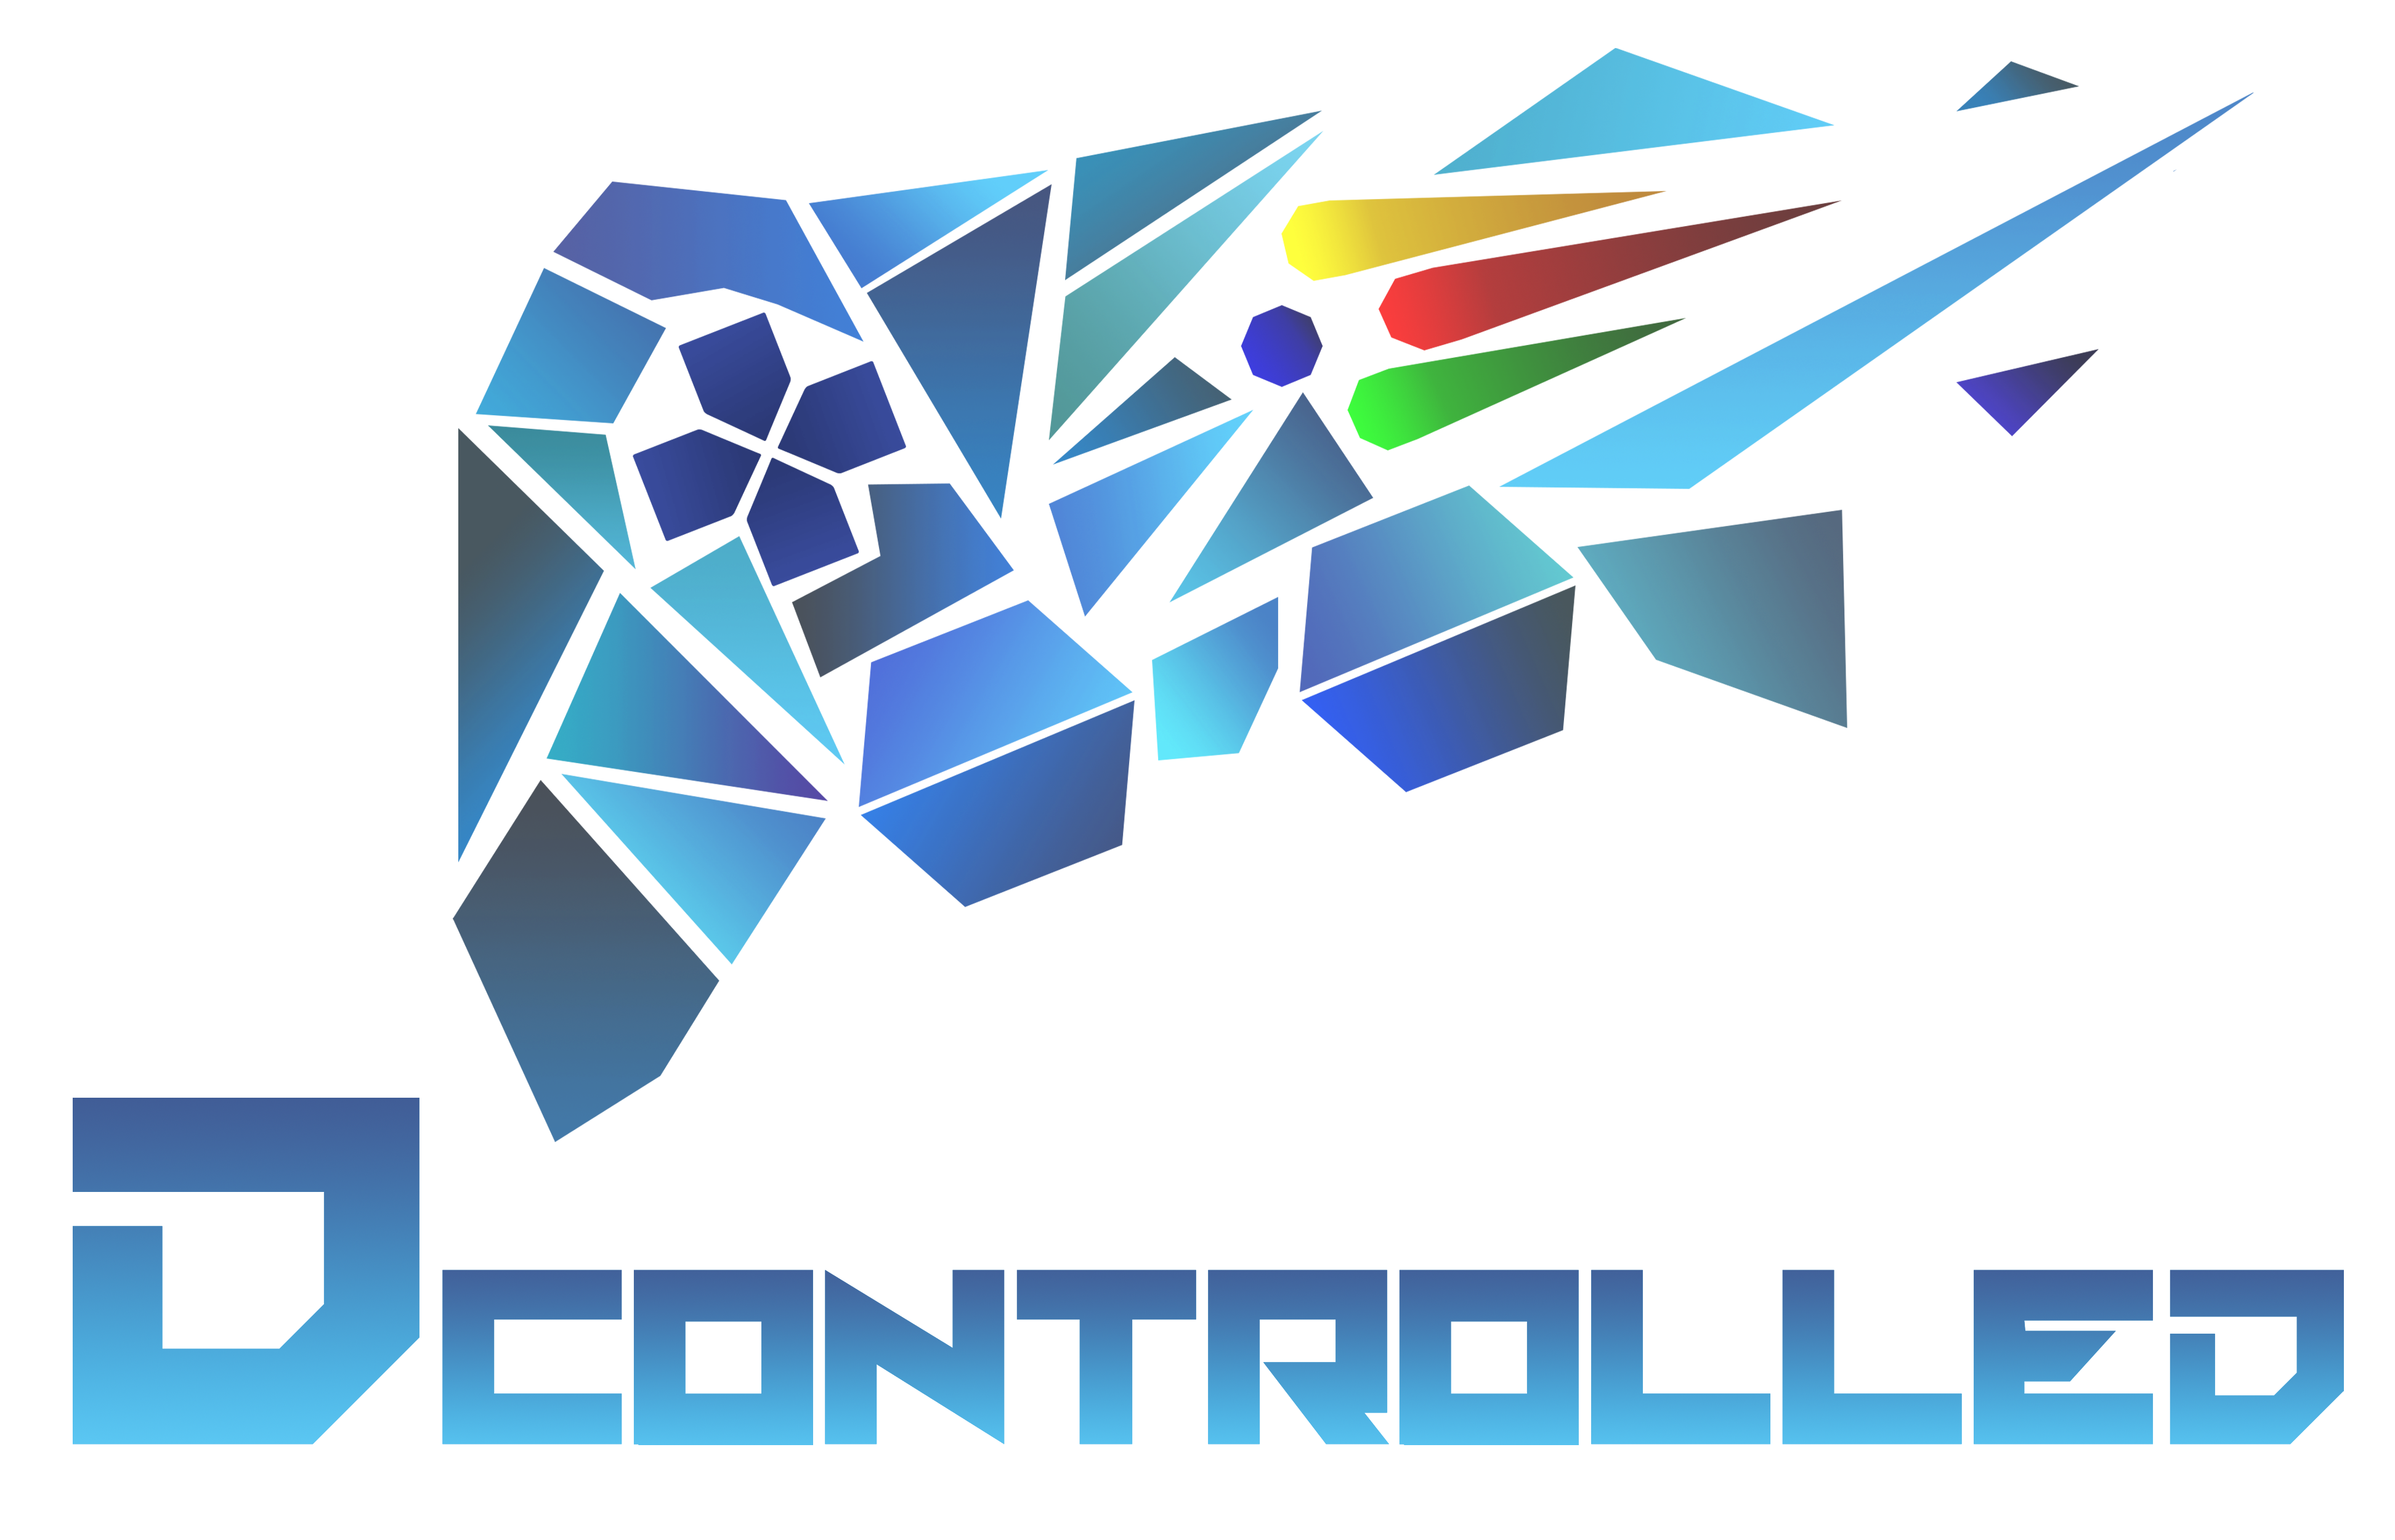 Dcontrolled